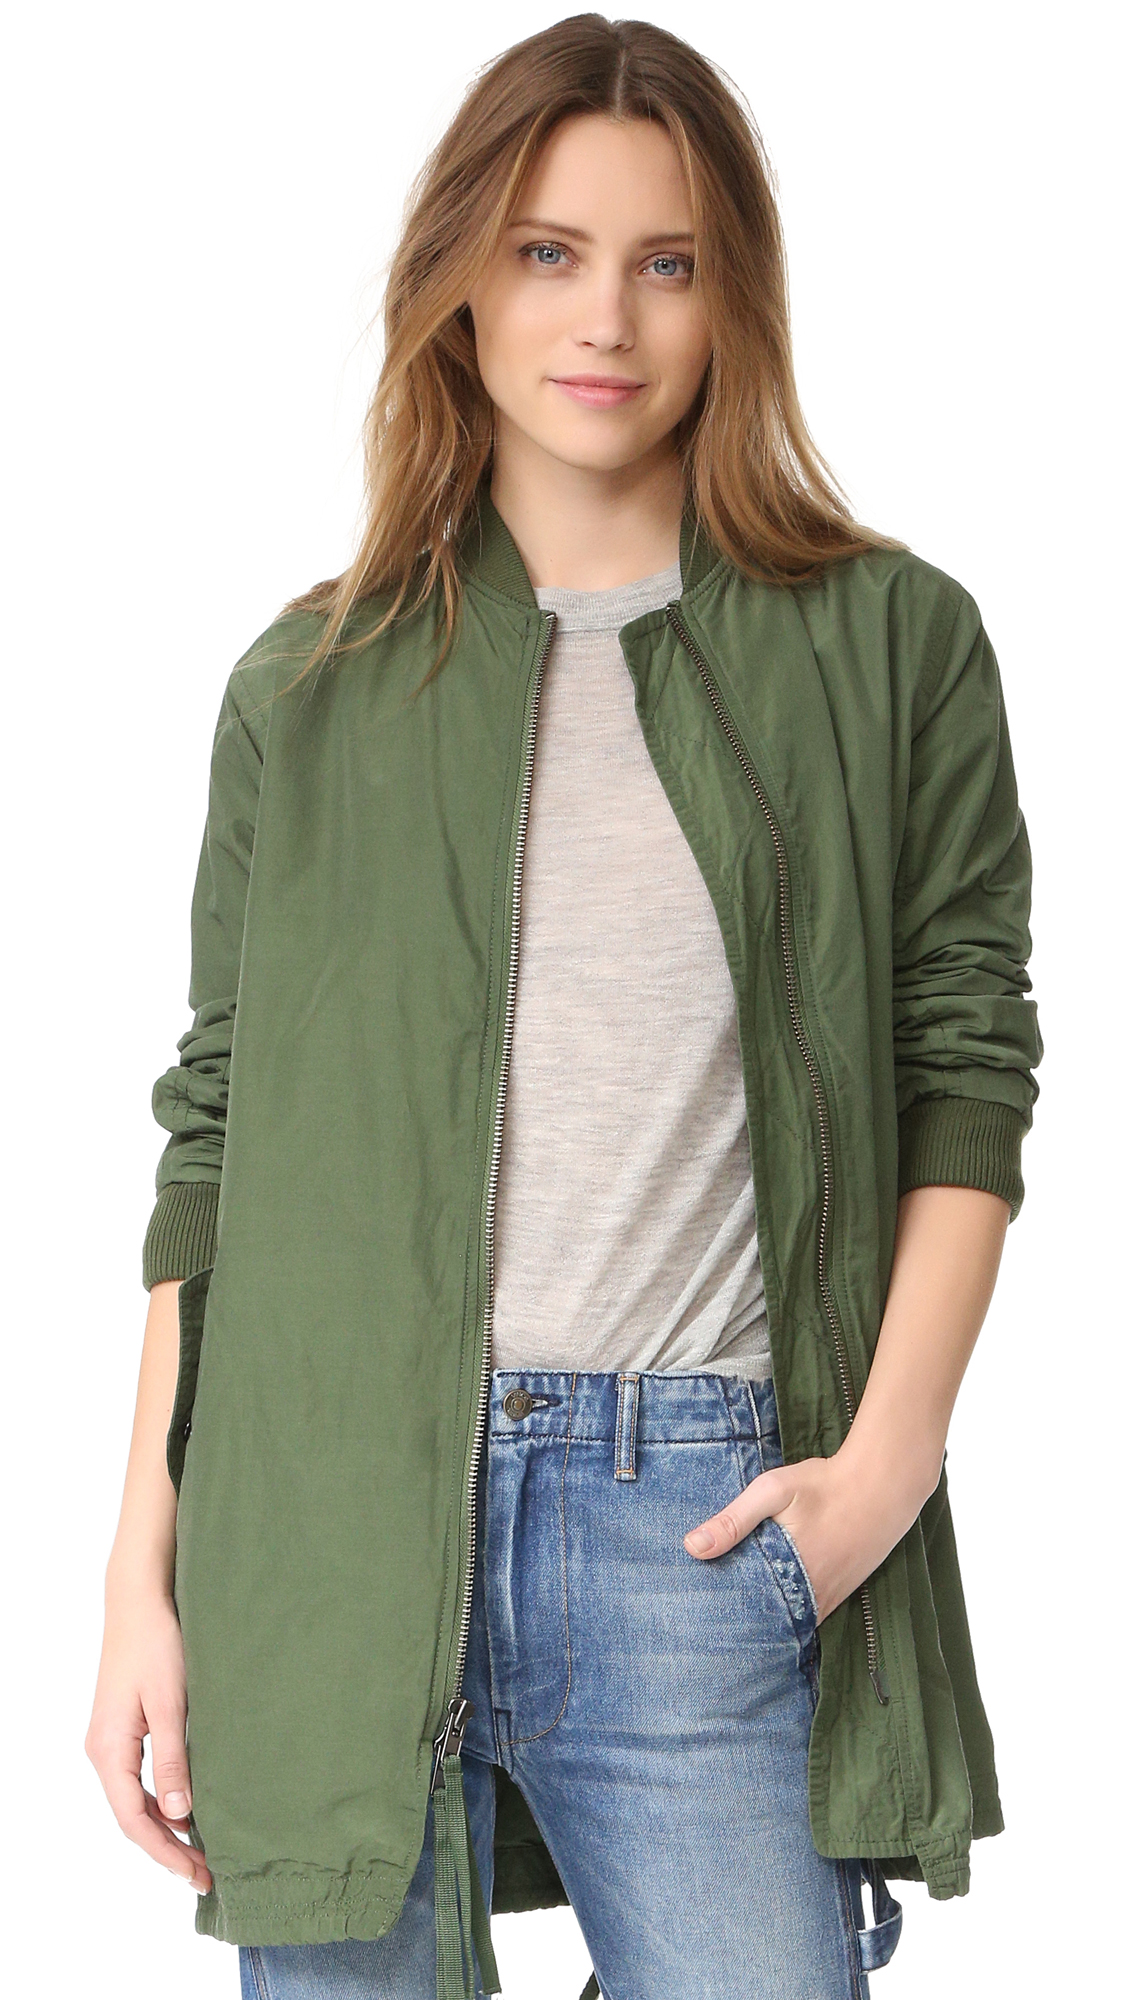 Vince Oversized Bomber Jacket - Ivy at Shopbop